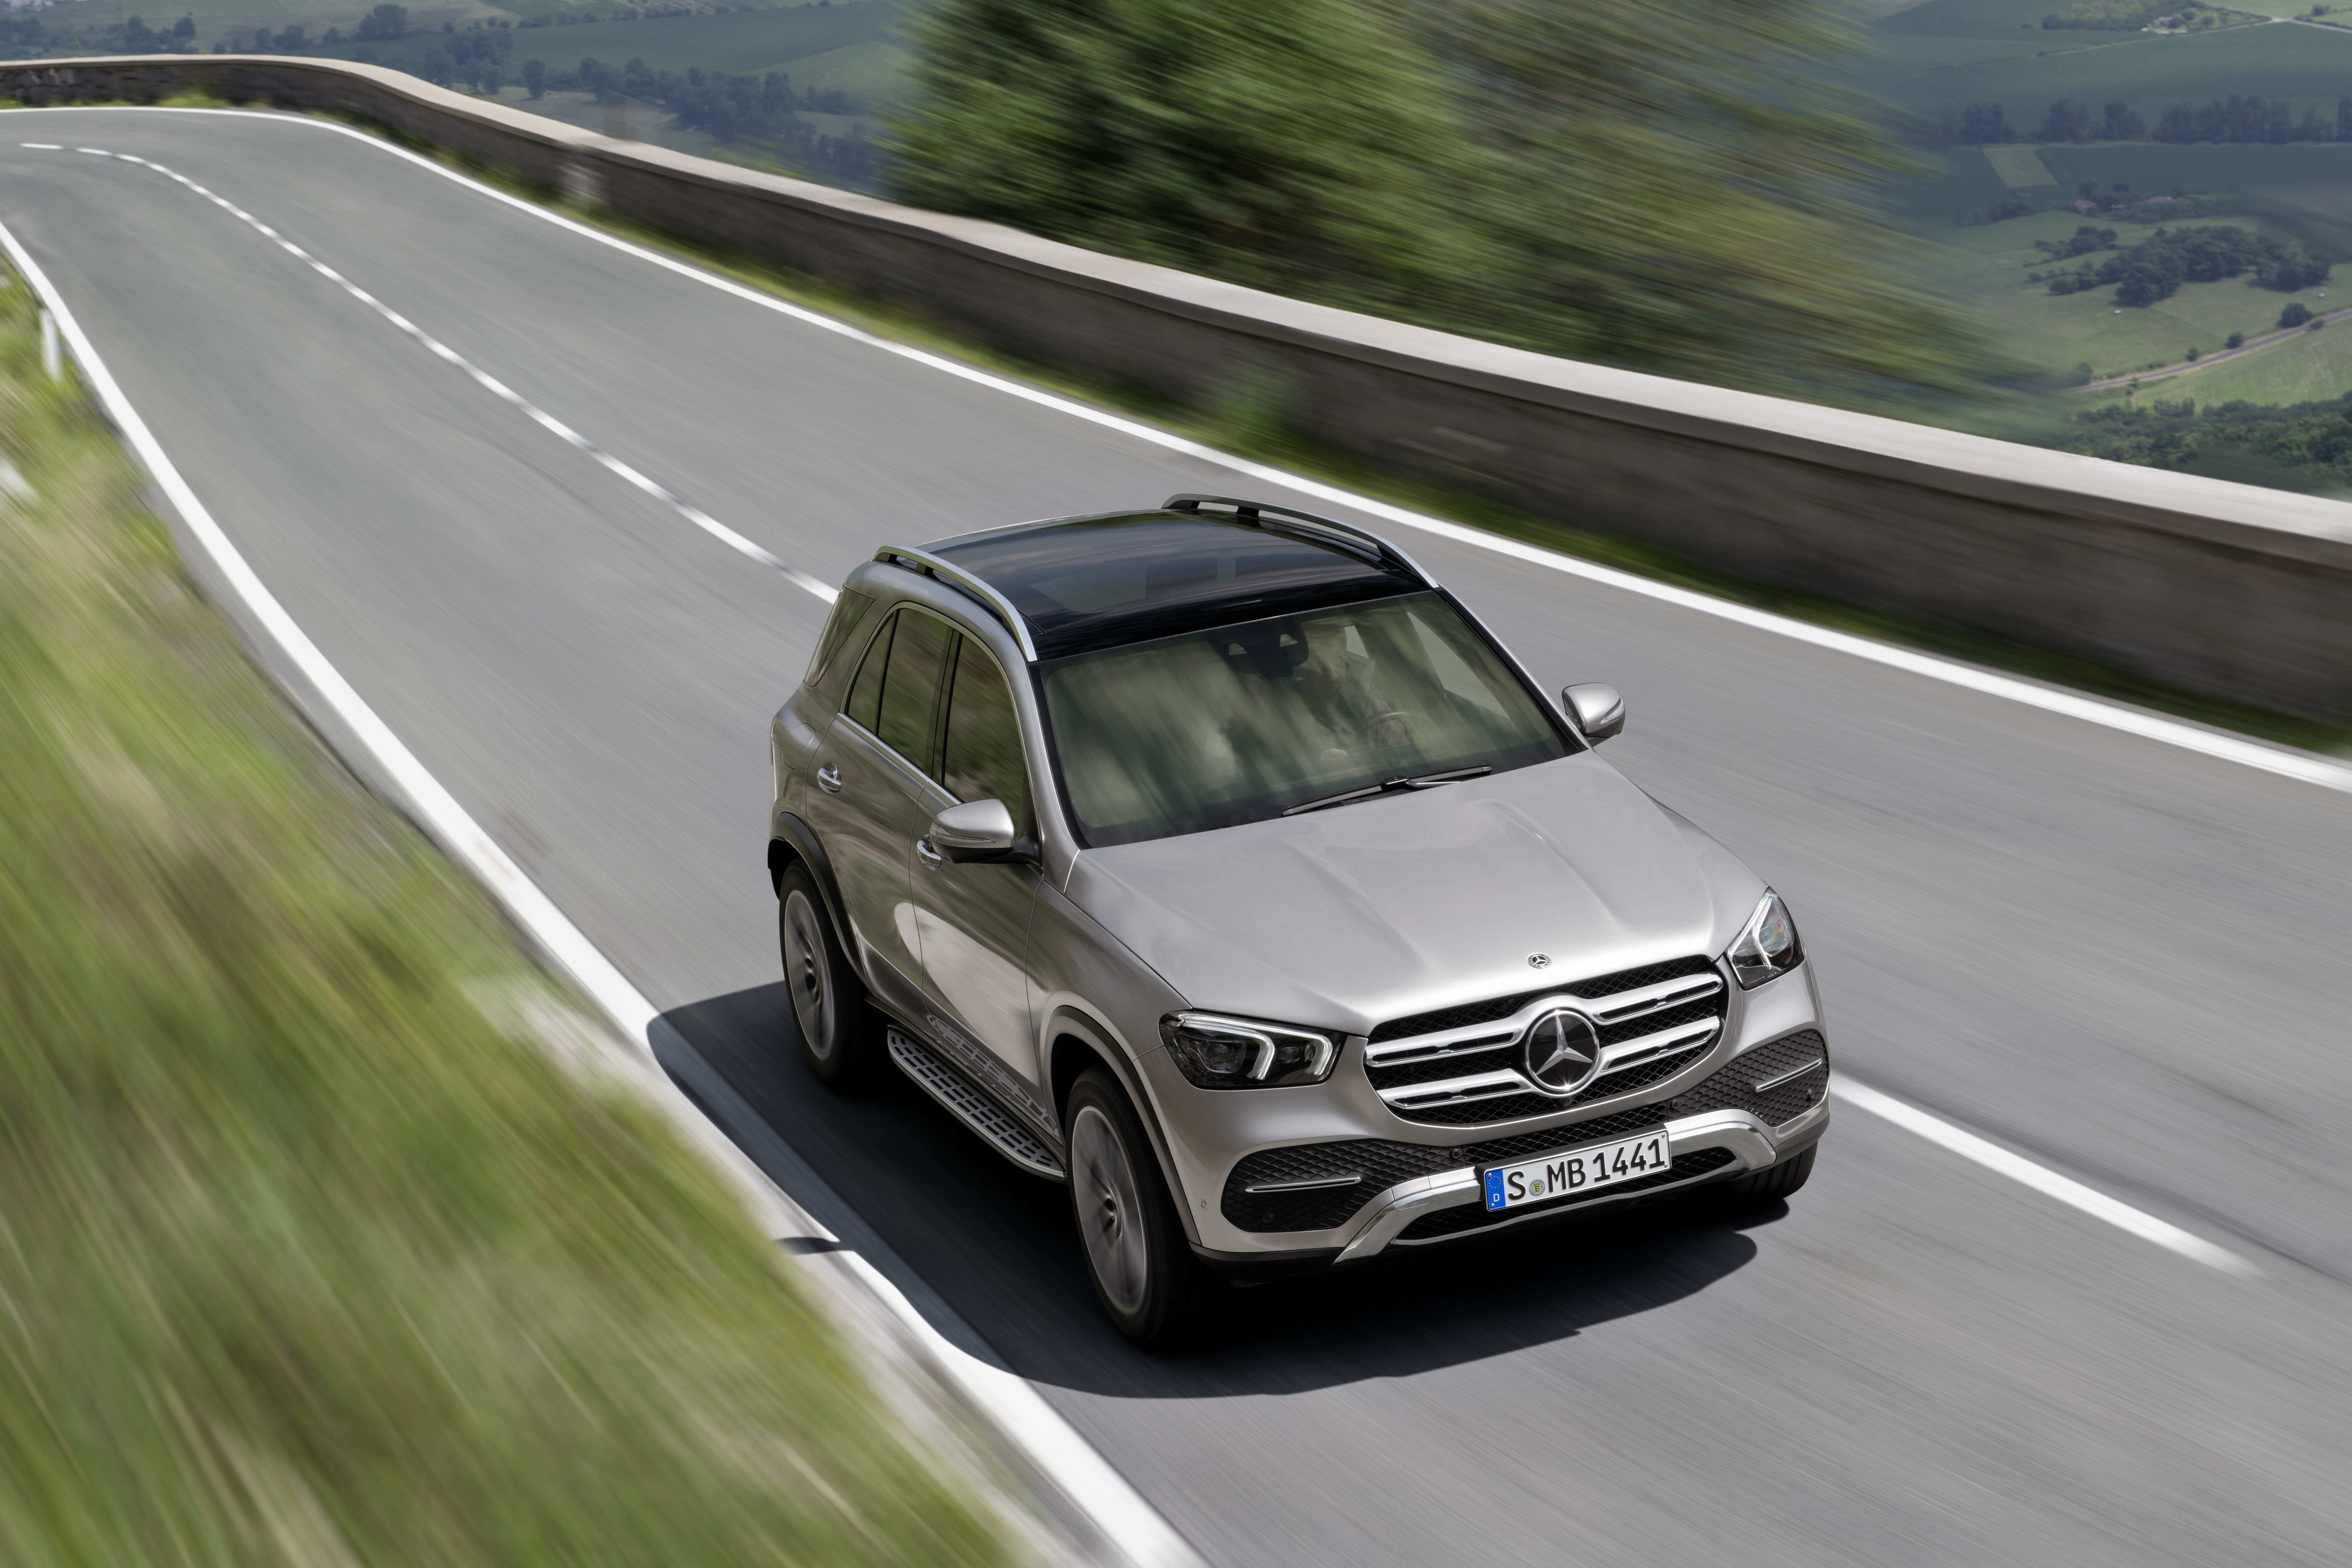 37 The Best Mercedes 2019 B Class Price And Release Date Speed Test by Best Mercedes 2019 B Class Price And Release Date